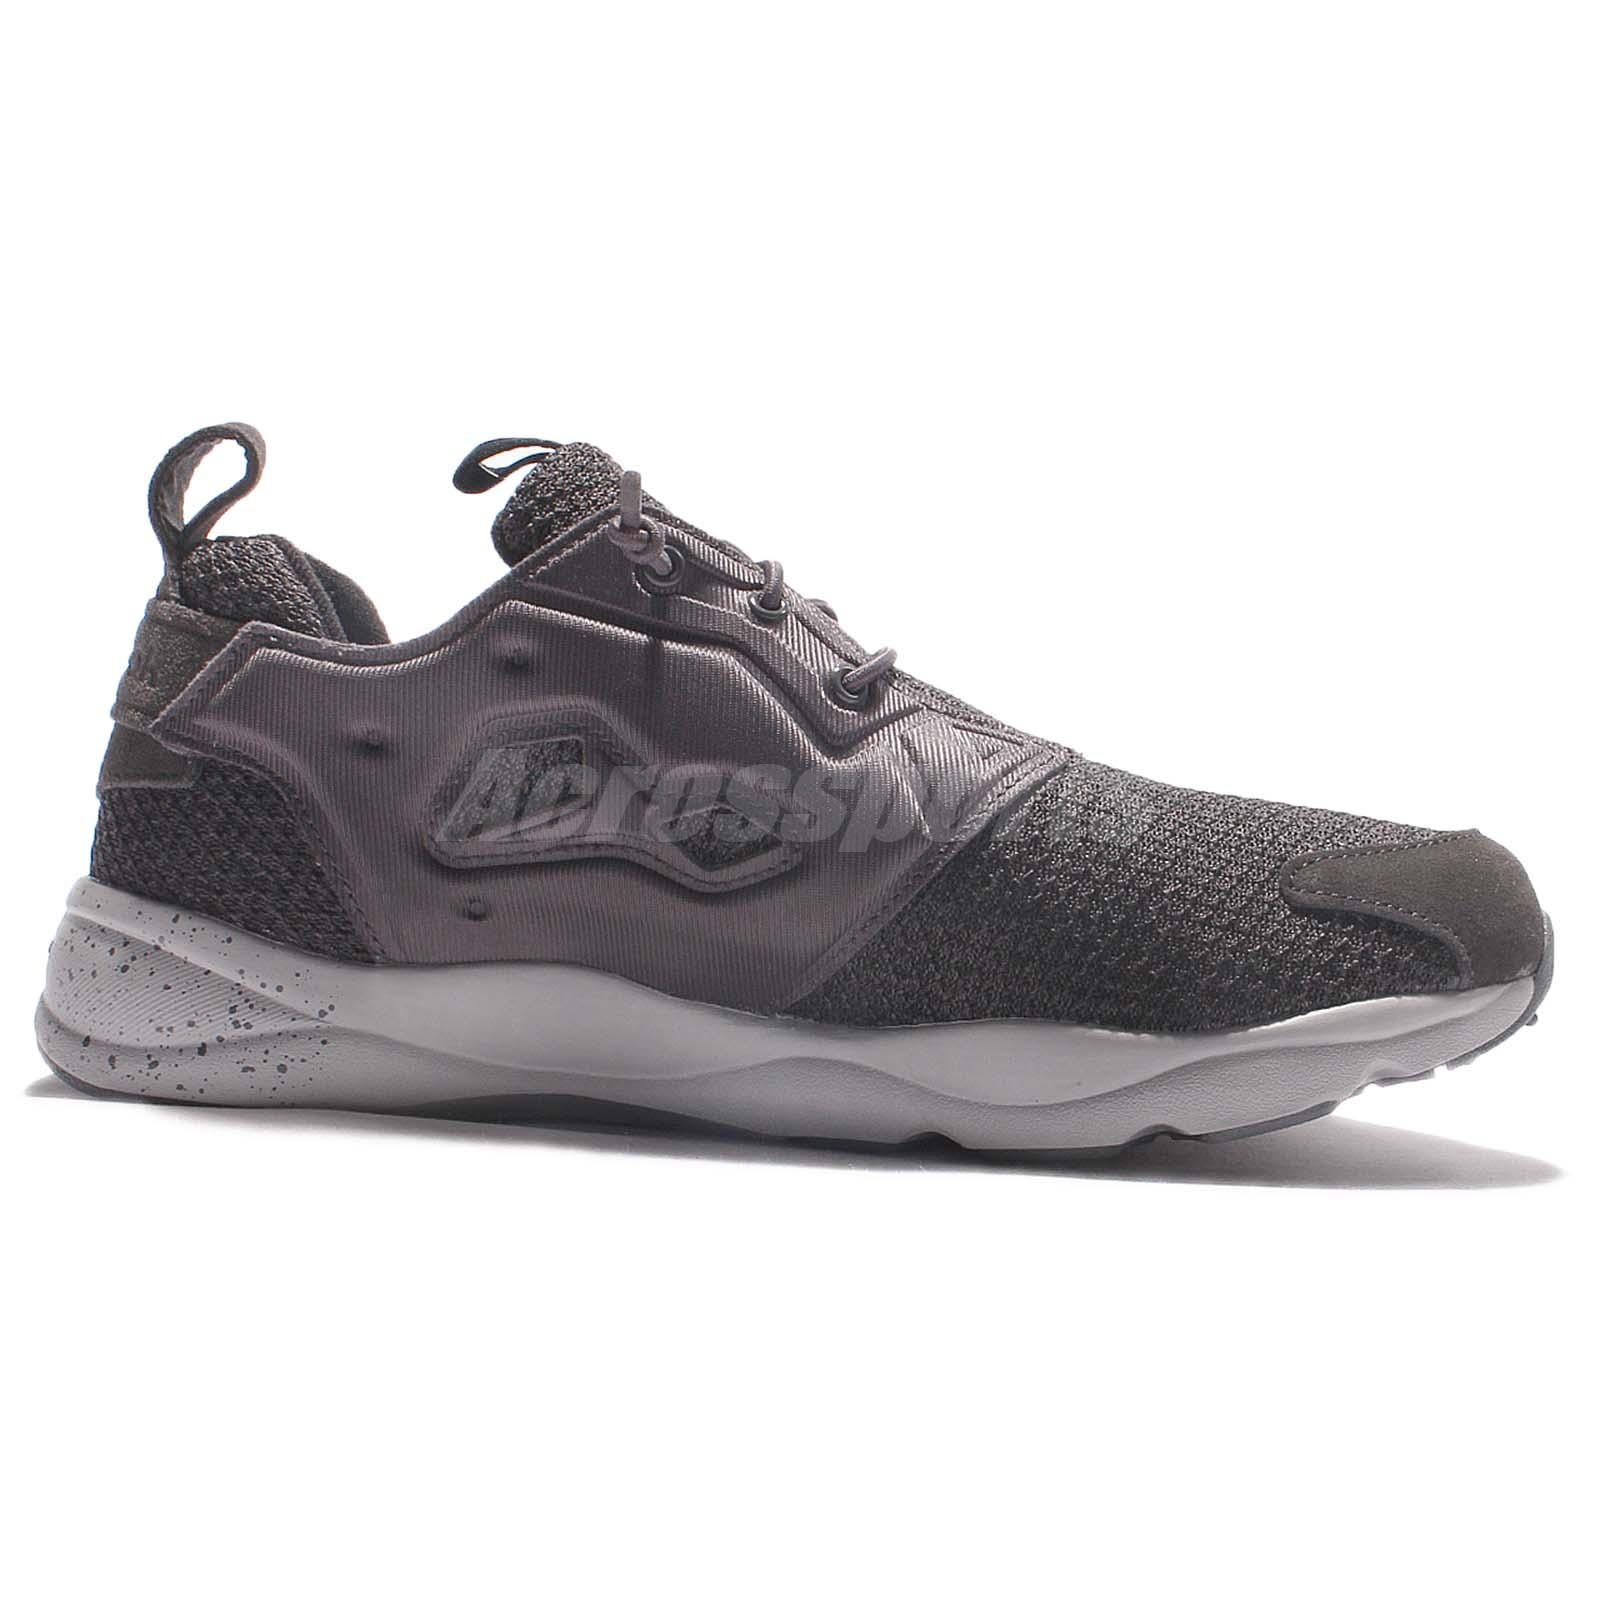 cheap reebok furylite mens cheap   OFF38% The Largest Catalog Discounts 237451940098